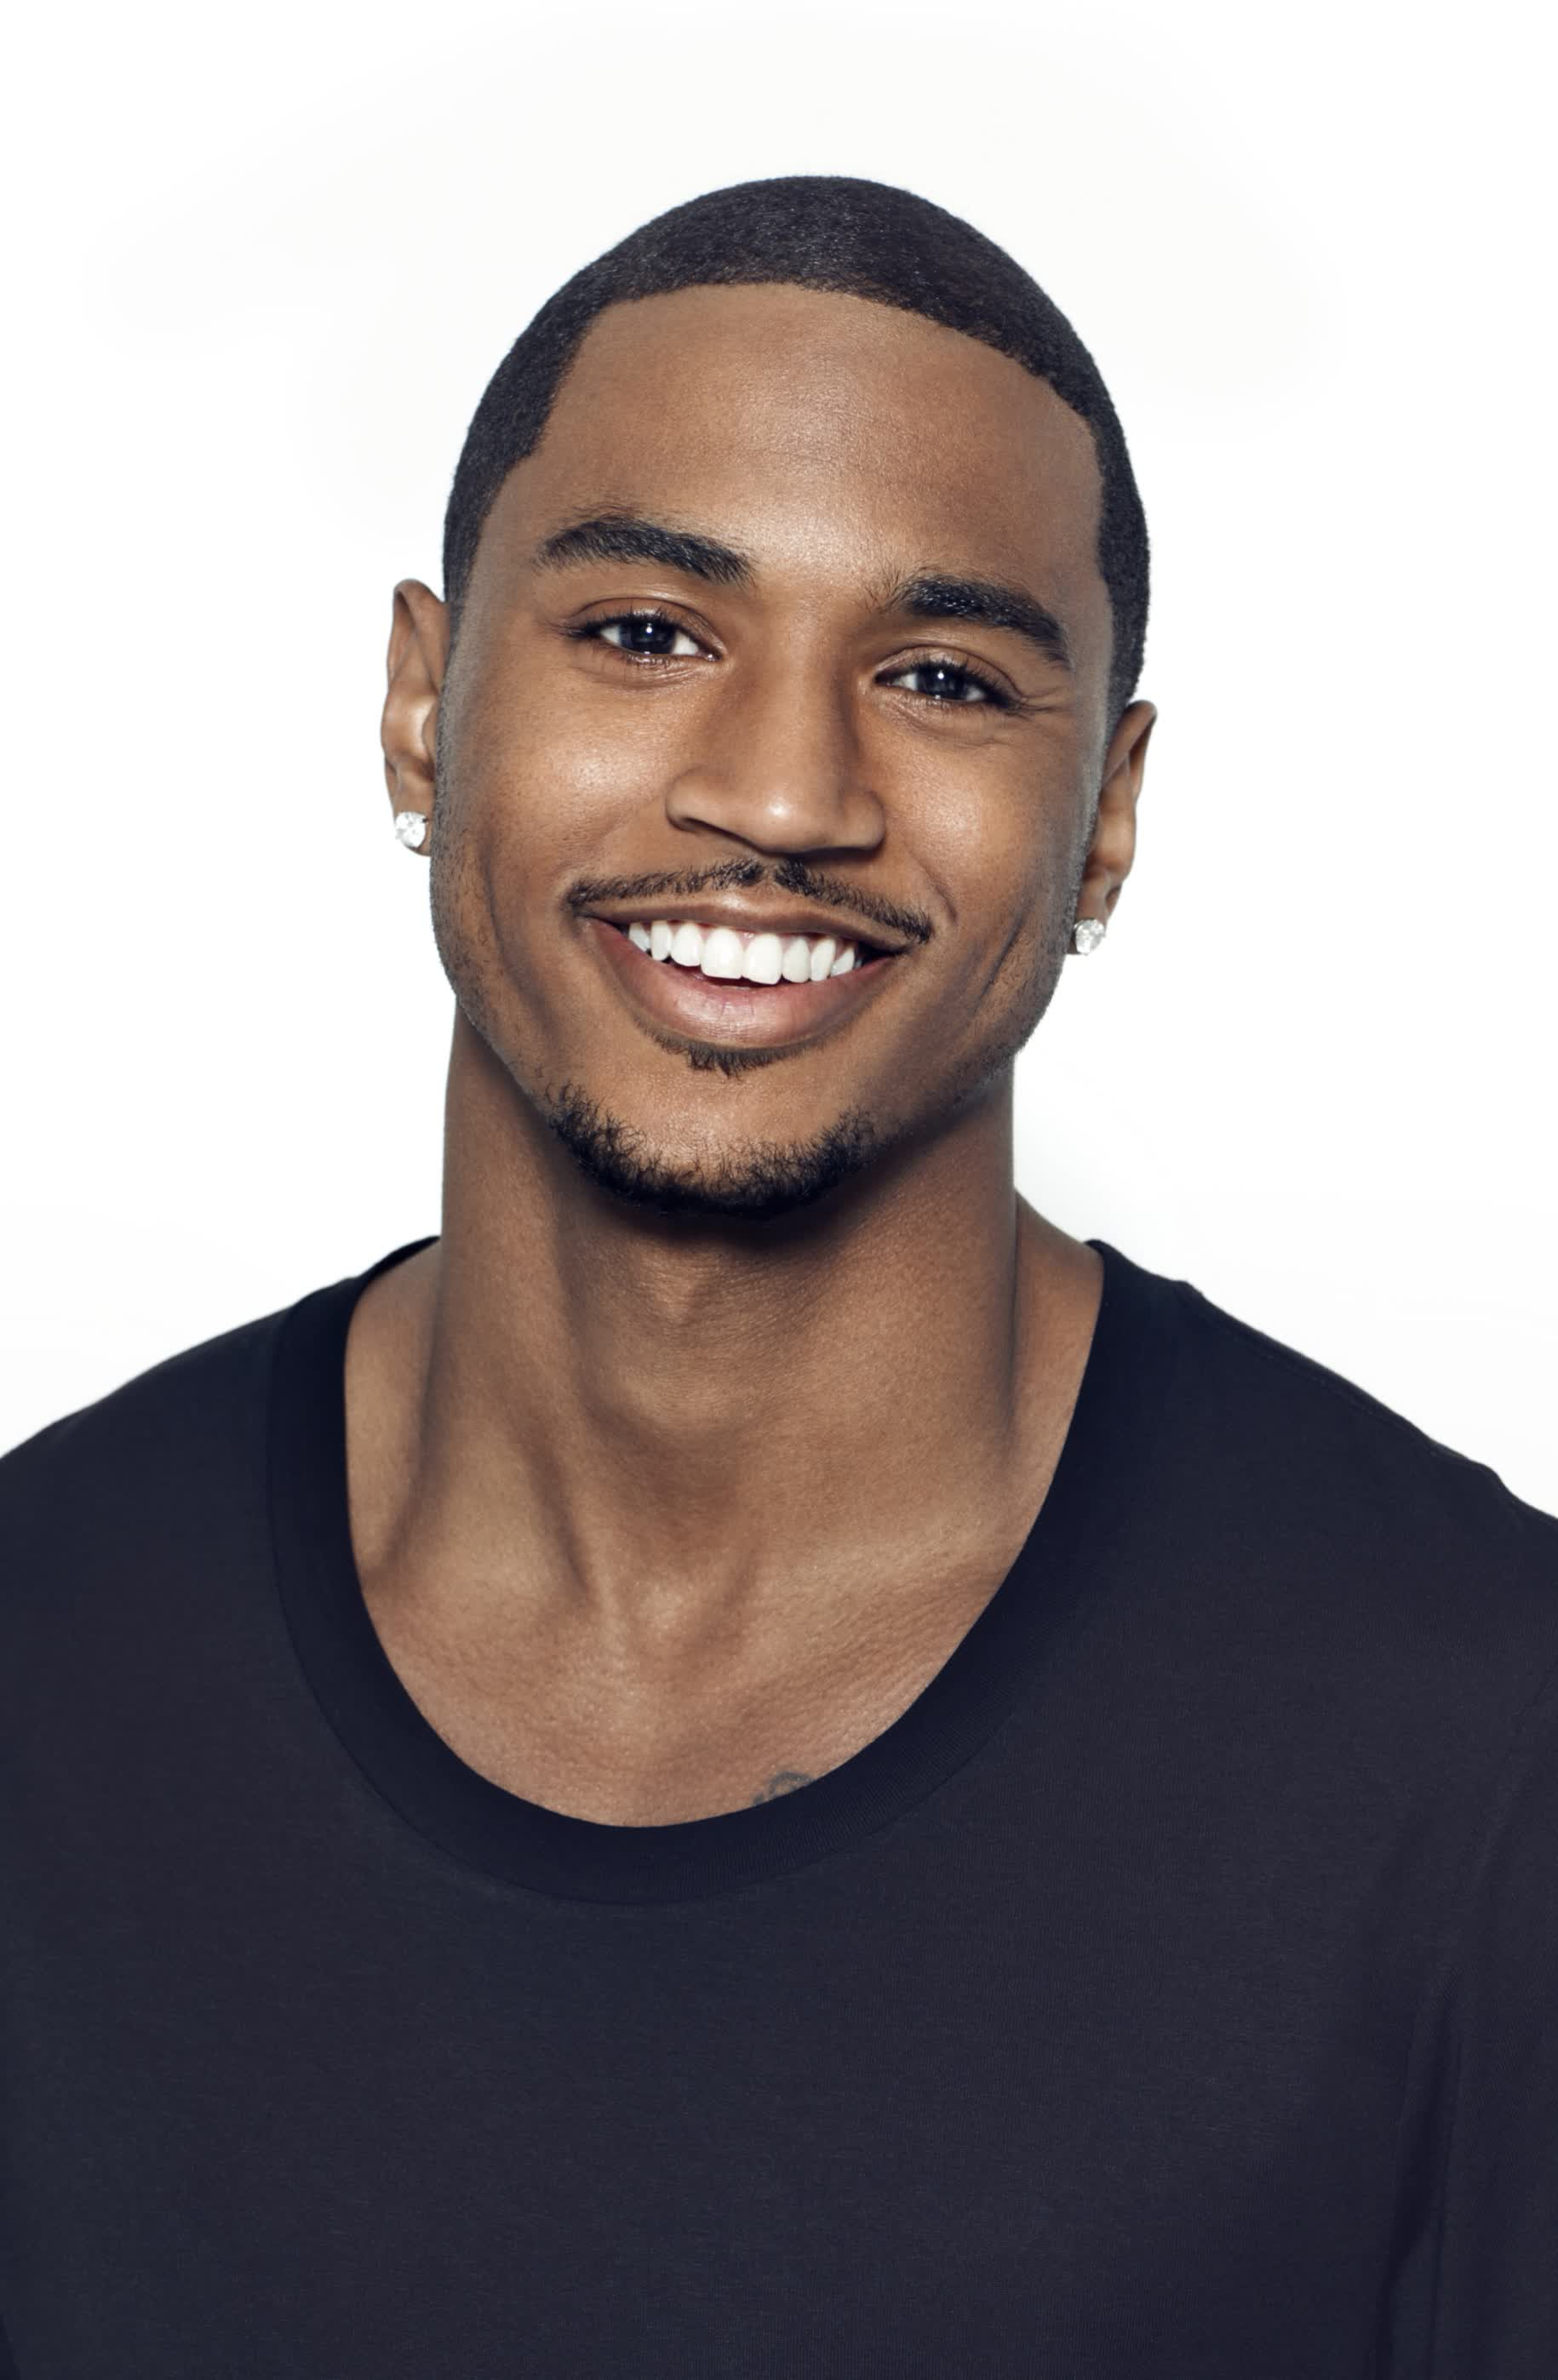 Trey Songz - Bio, Age, Height, Weight, Net Worth, Facts ...How Tall Is Trey Songz In Feet